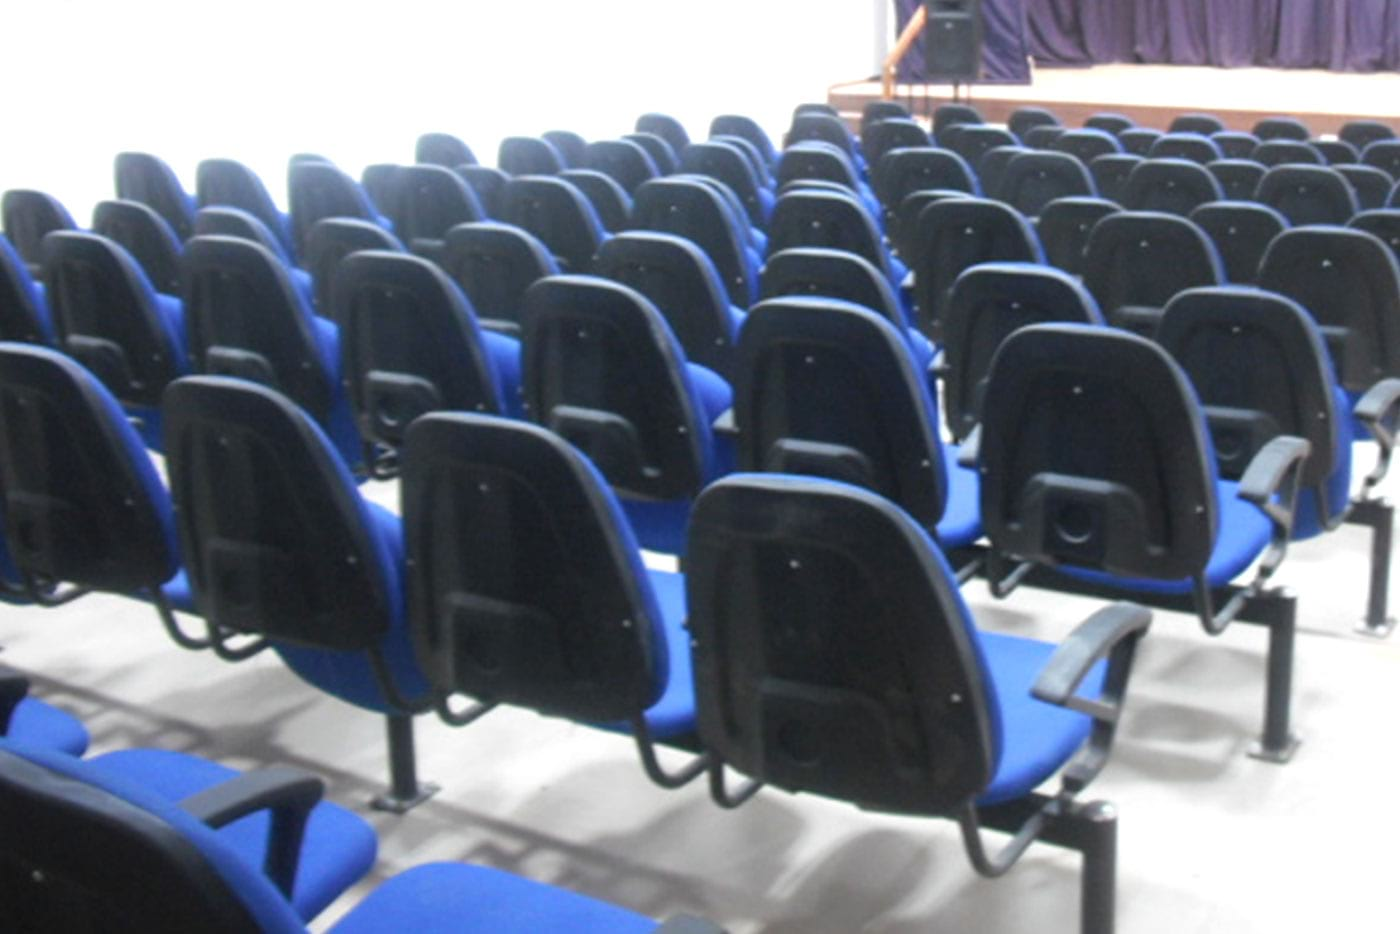 Back side view of Auditorium Furniture